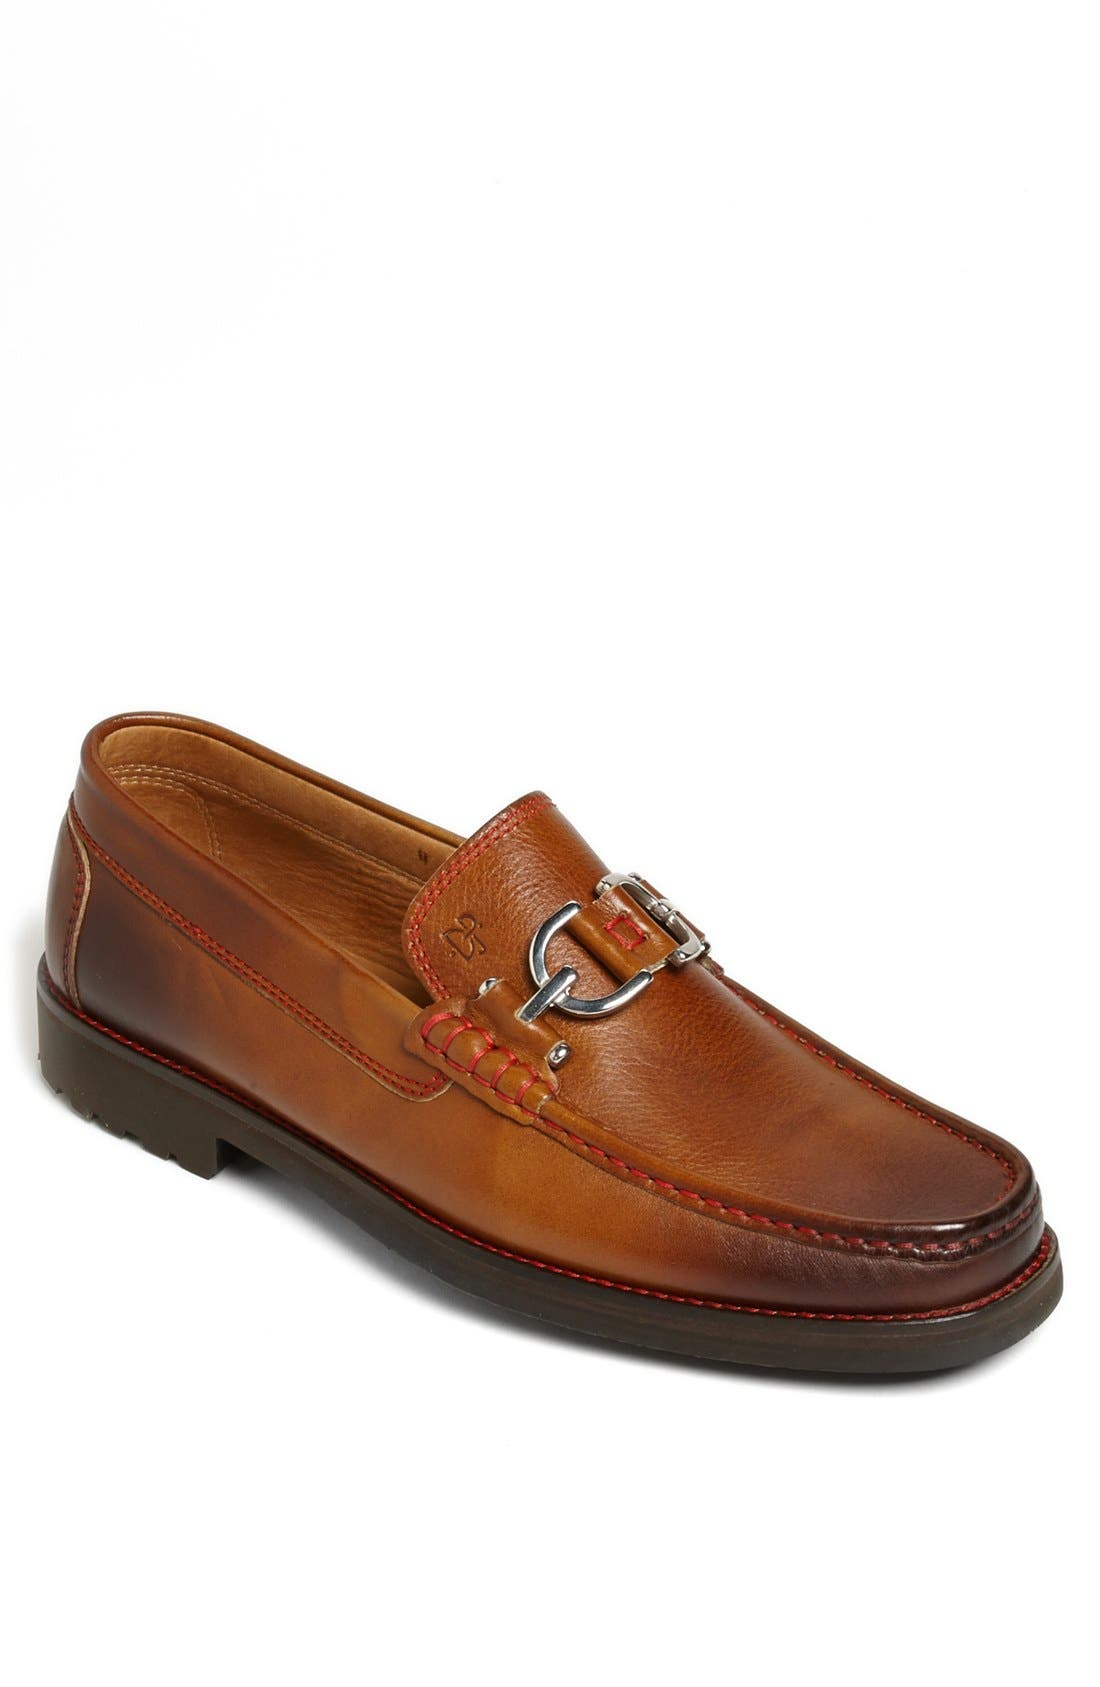 Alternate Image 1 Selected - Donald J Pliner 'Dustee' Bit Loafer